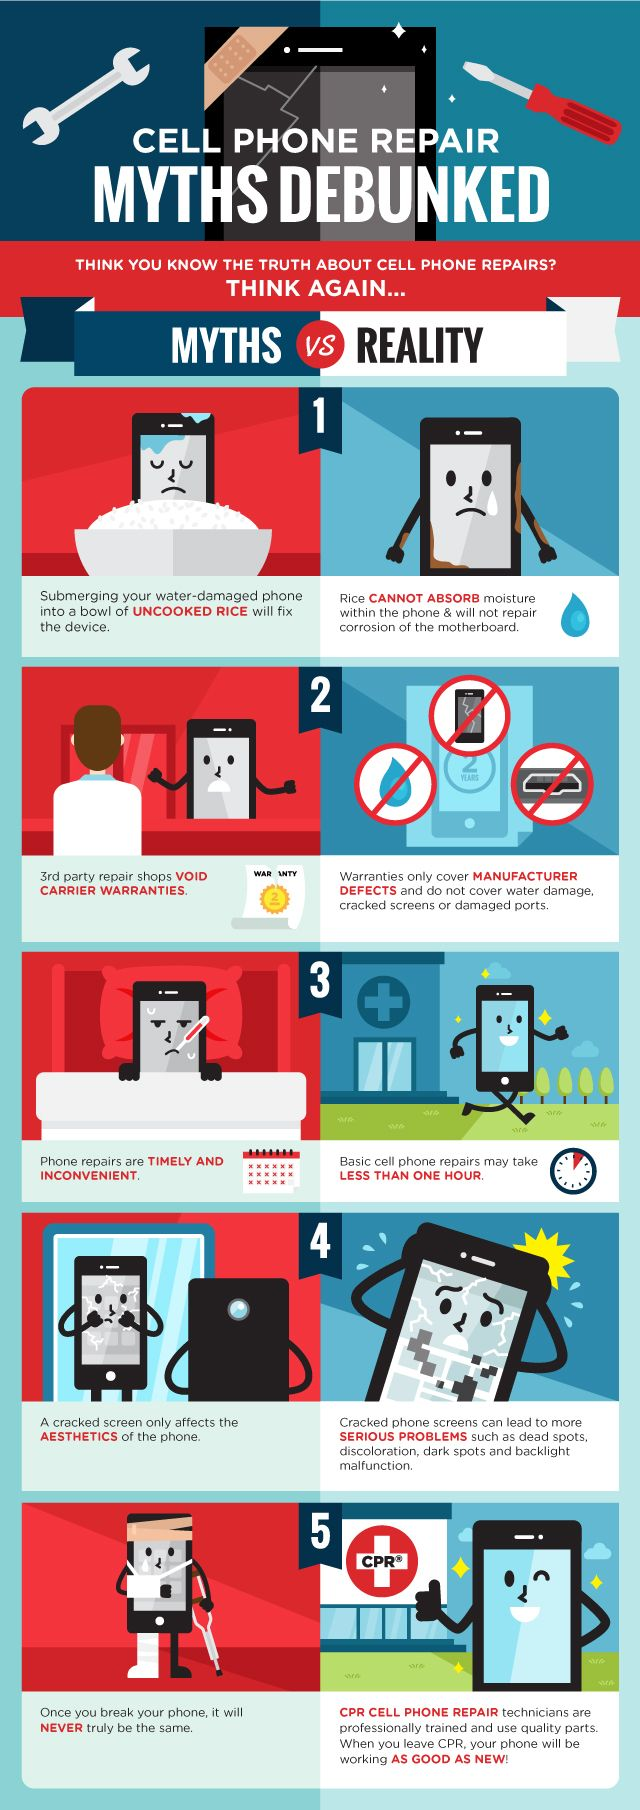 The CPR experts are here to clear up a few of the Internet's most common cell phone repair myths.